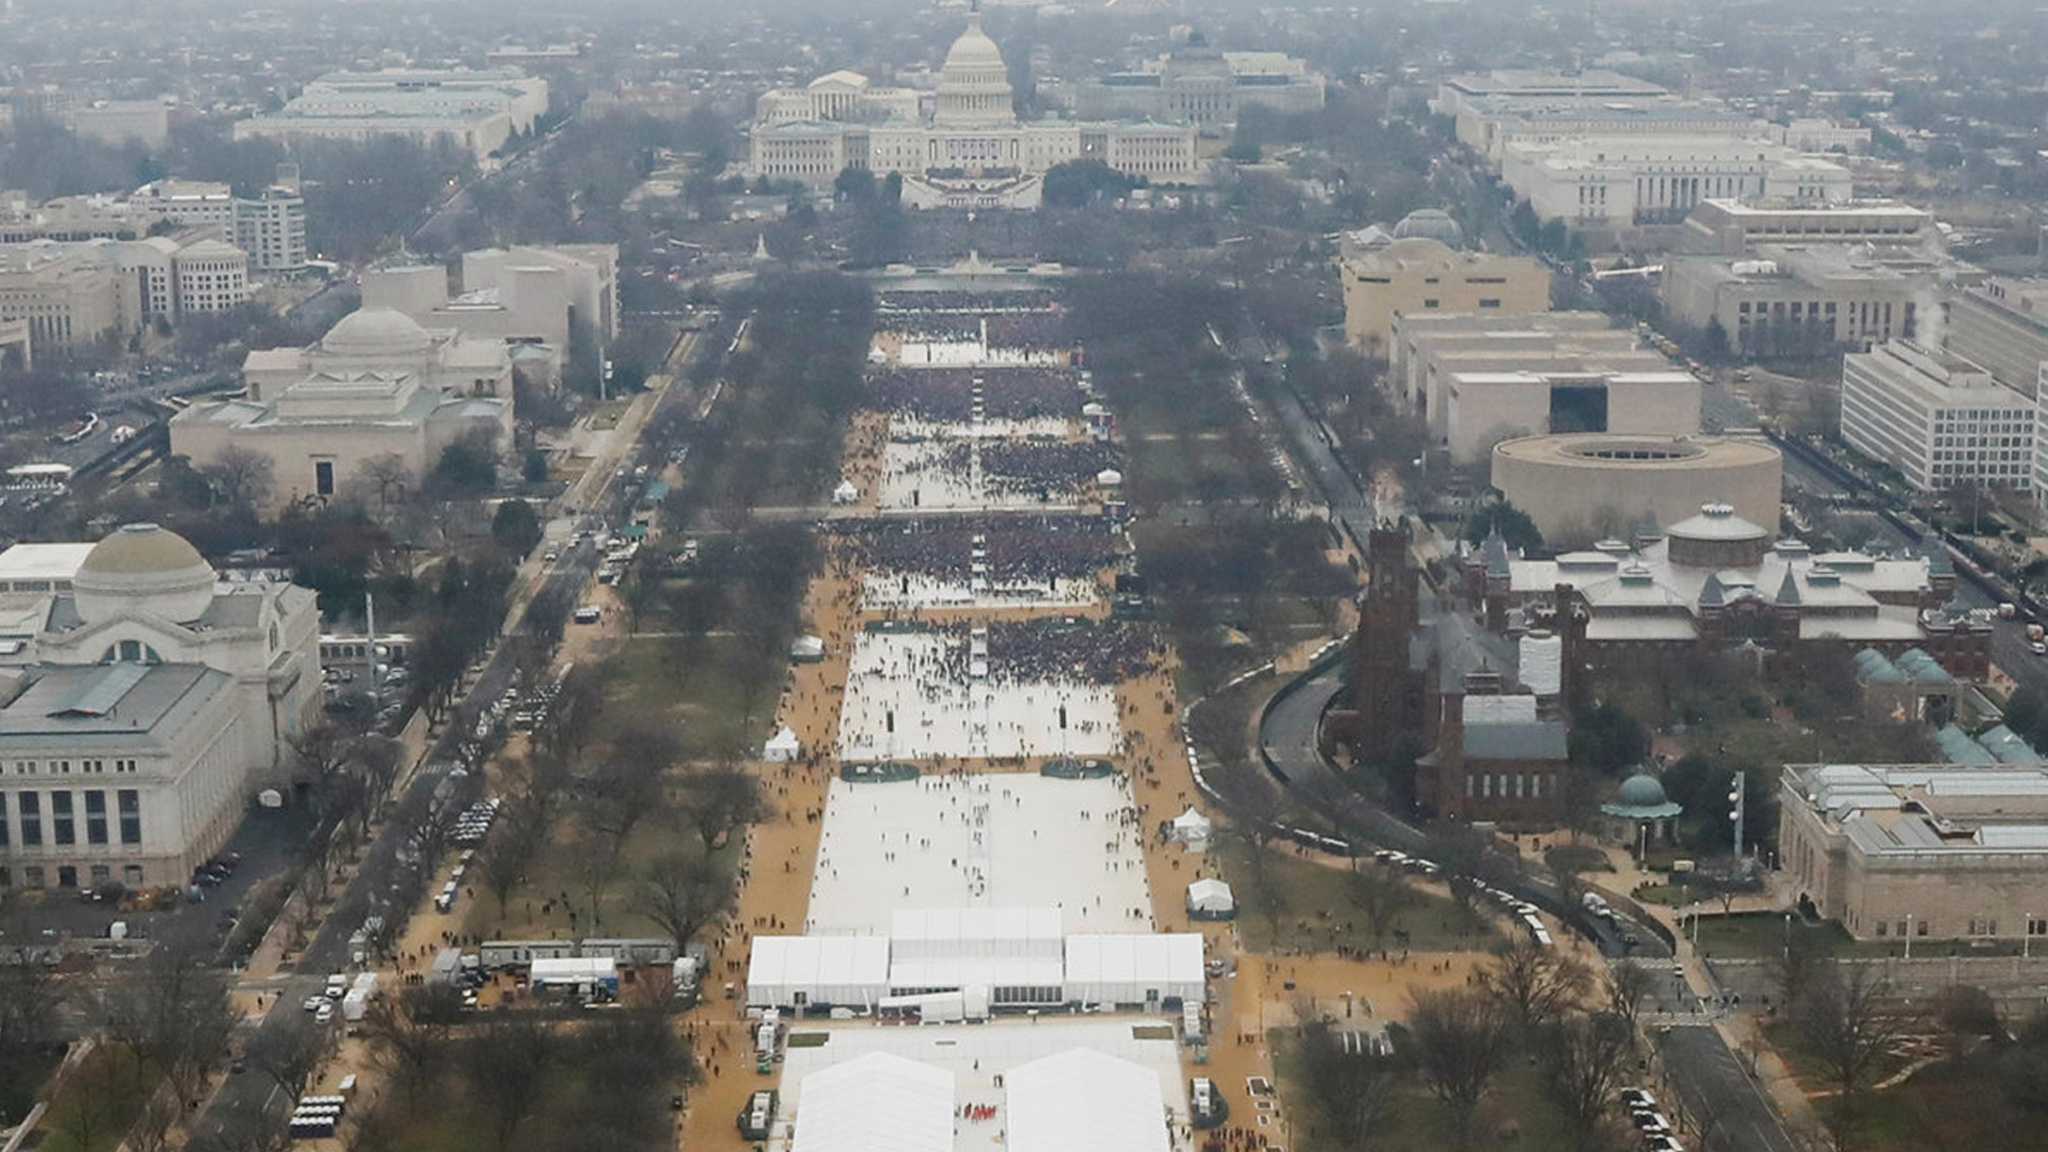 Donald Trump's inauguration 2017